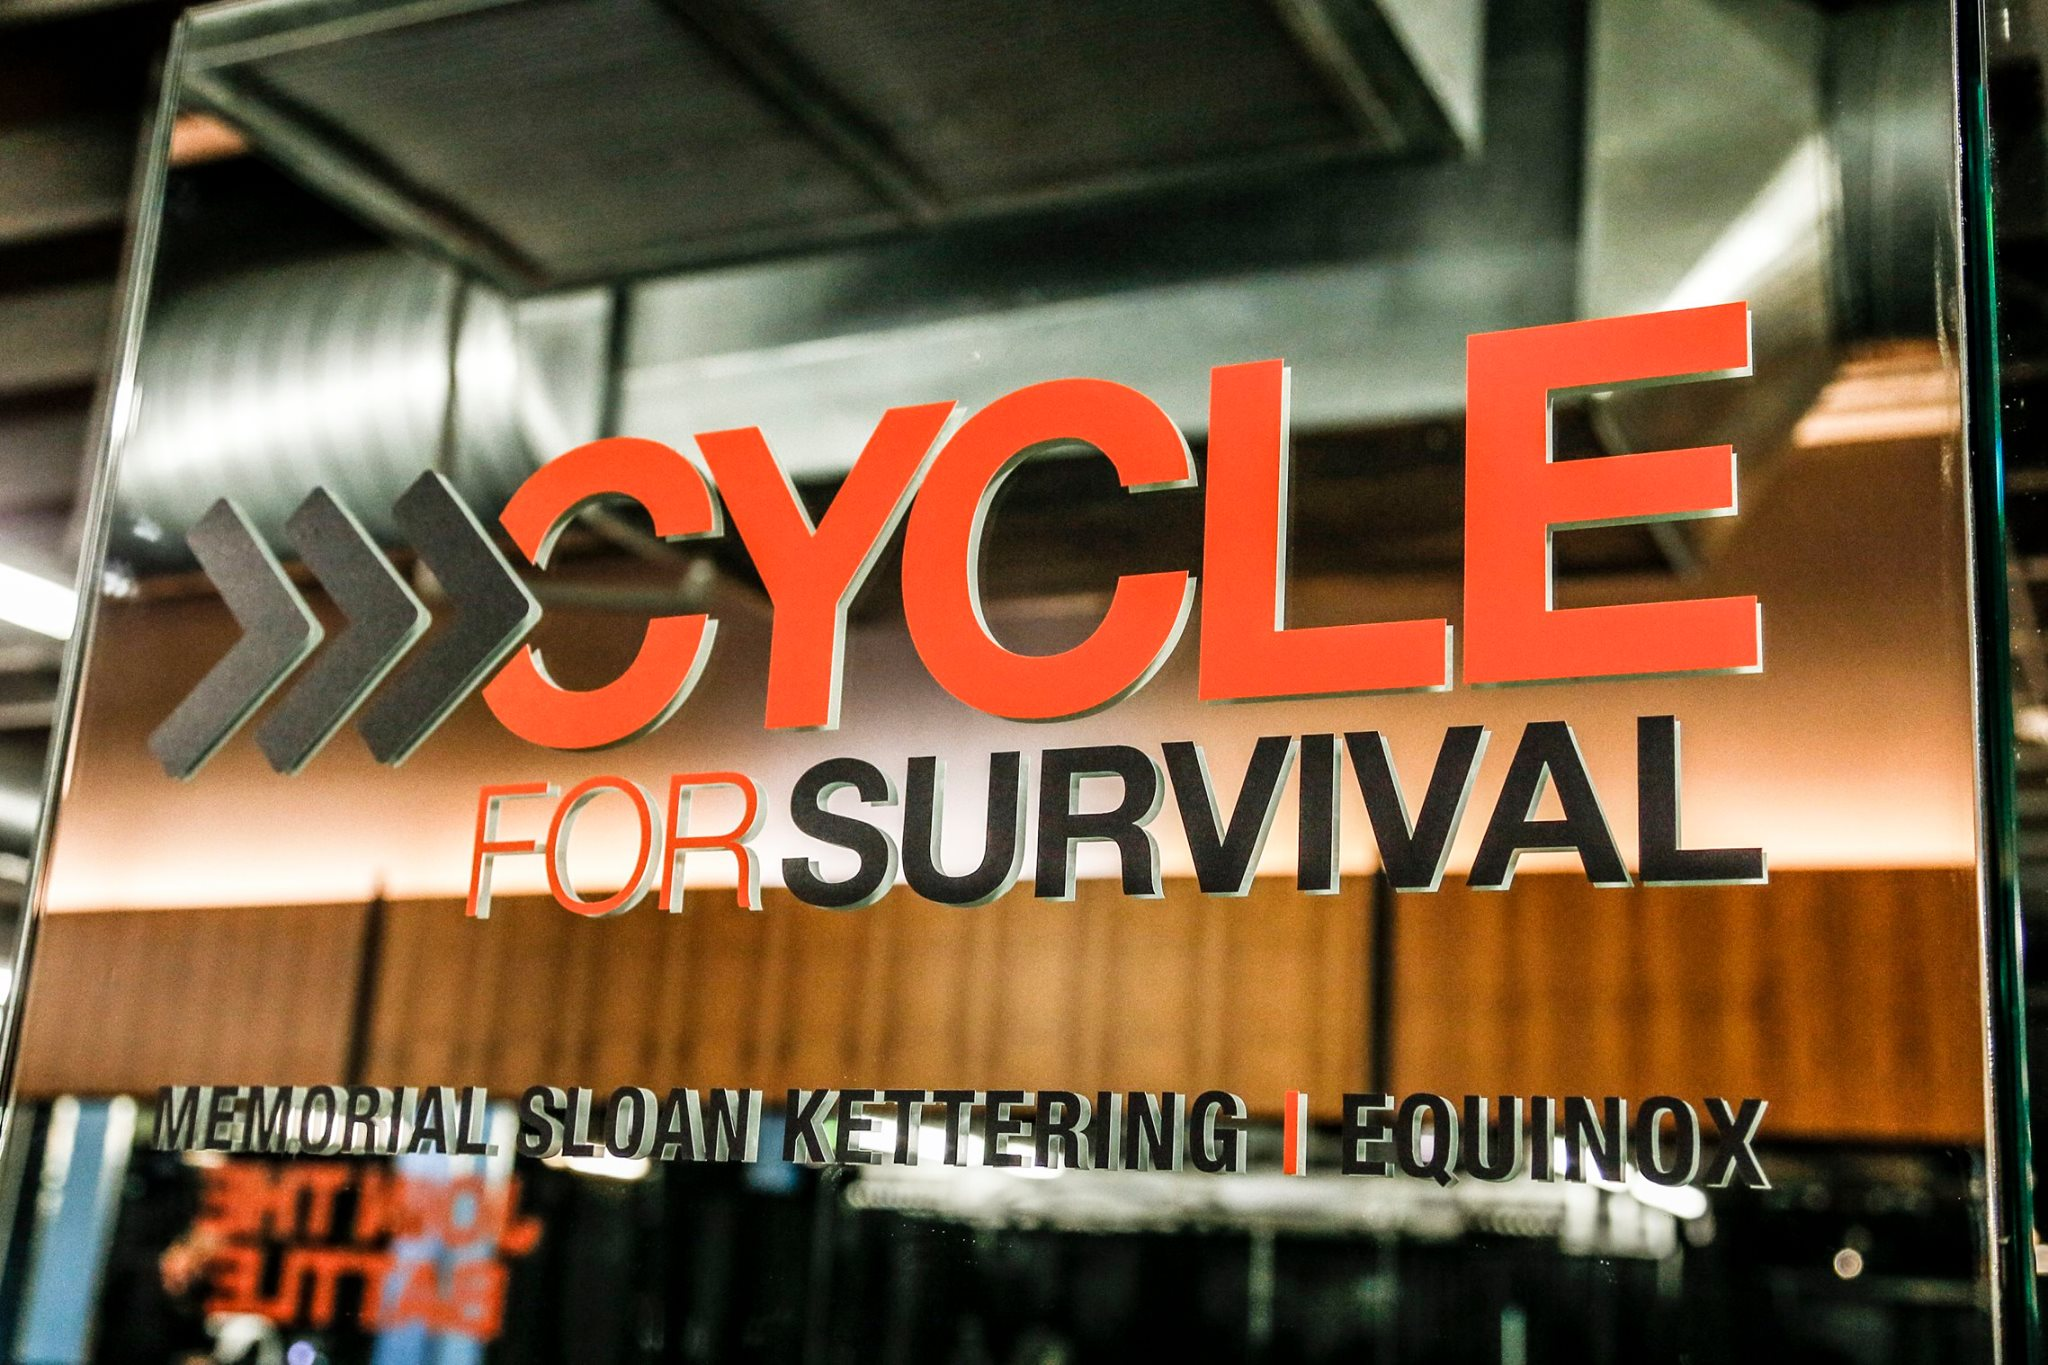 image: facebook.com/cycle for survival